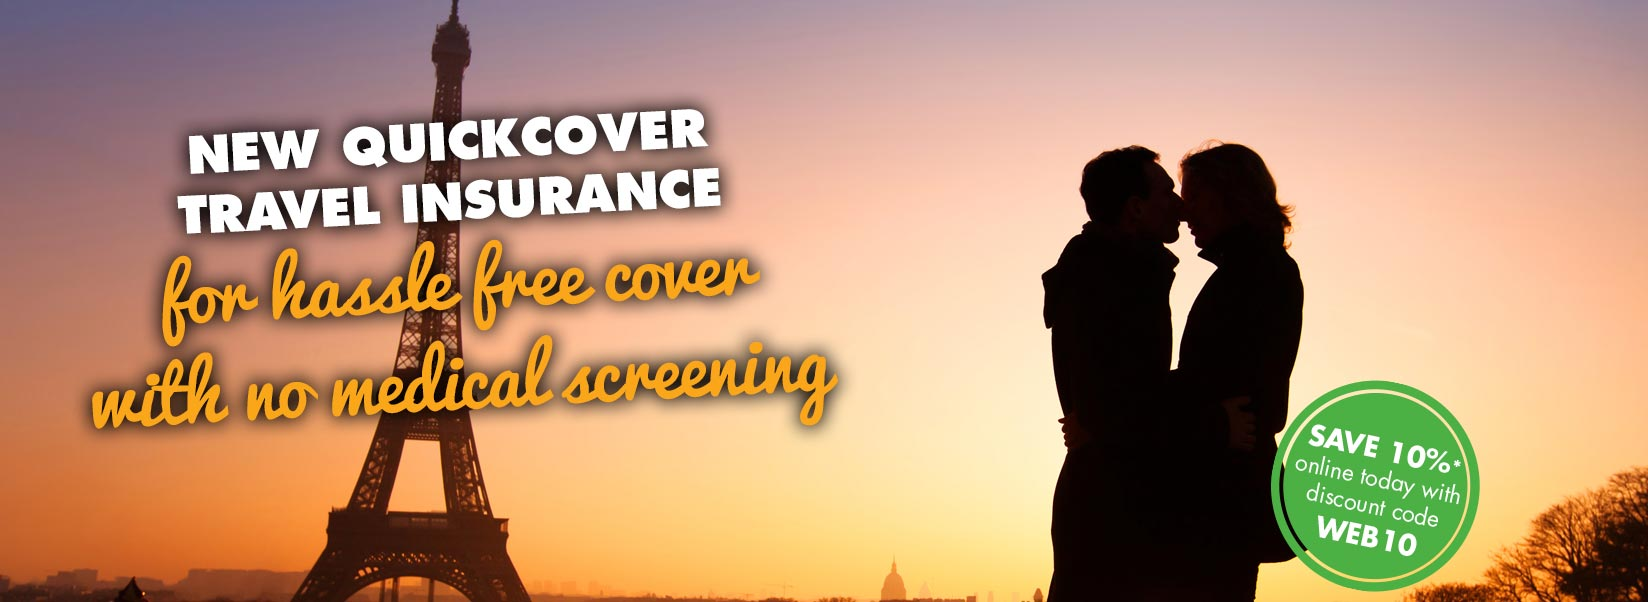 QuickCover travel insurance